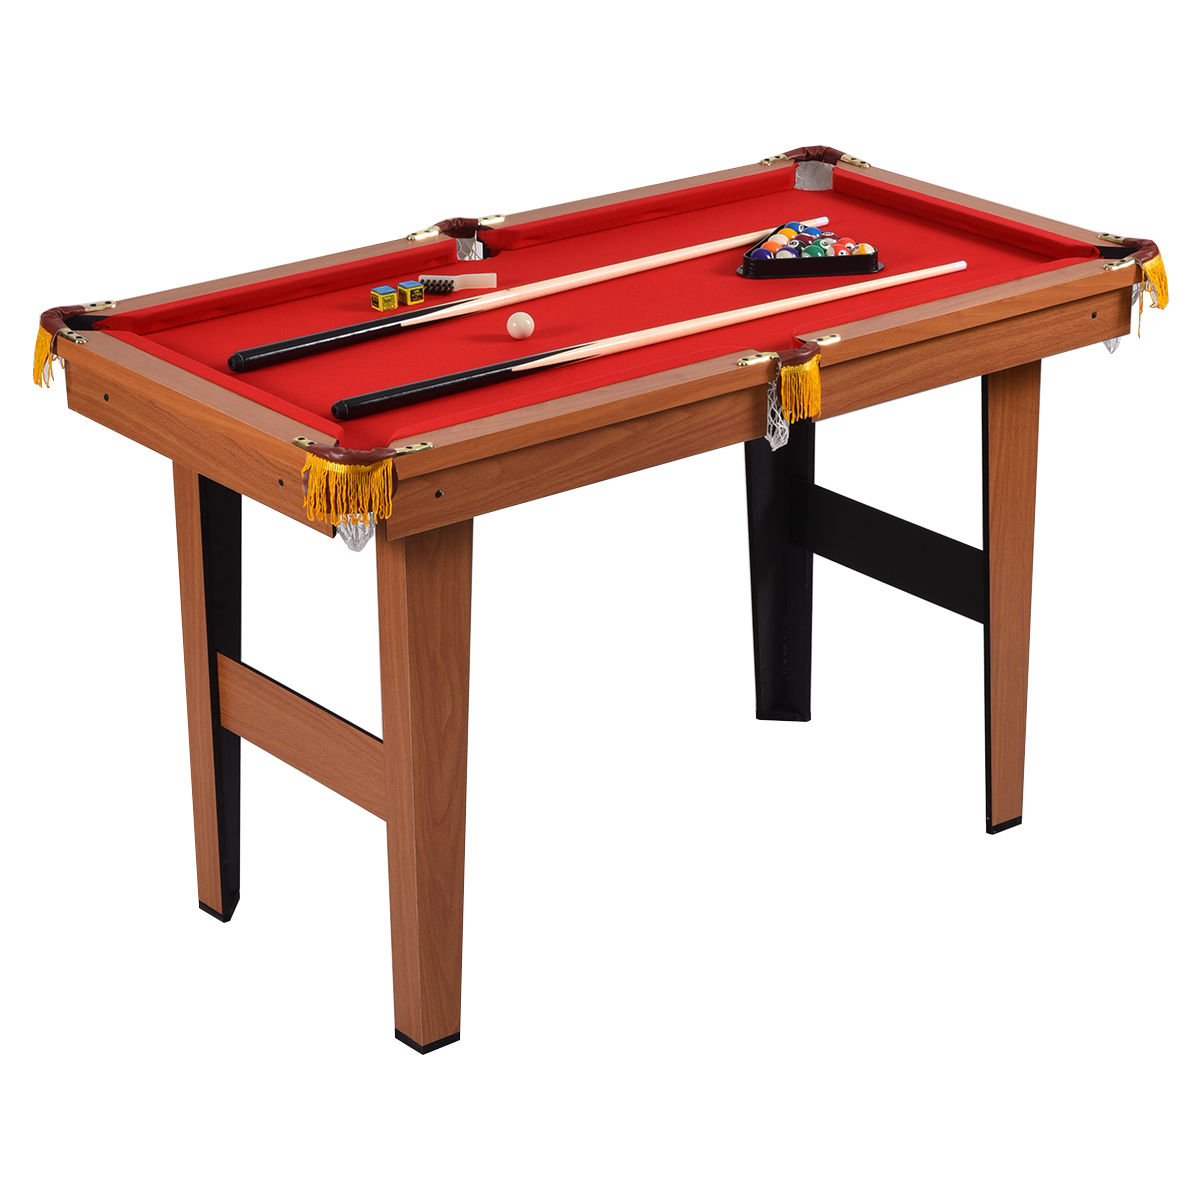 Costway 48'' Mini Table Top Pool Table Game Billiard Set Cues Balls Gift Indoor Sports by Costway